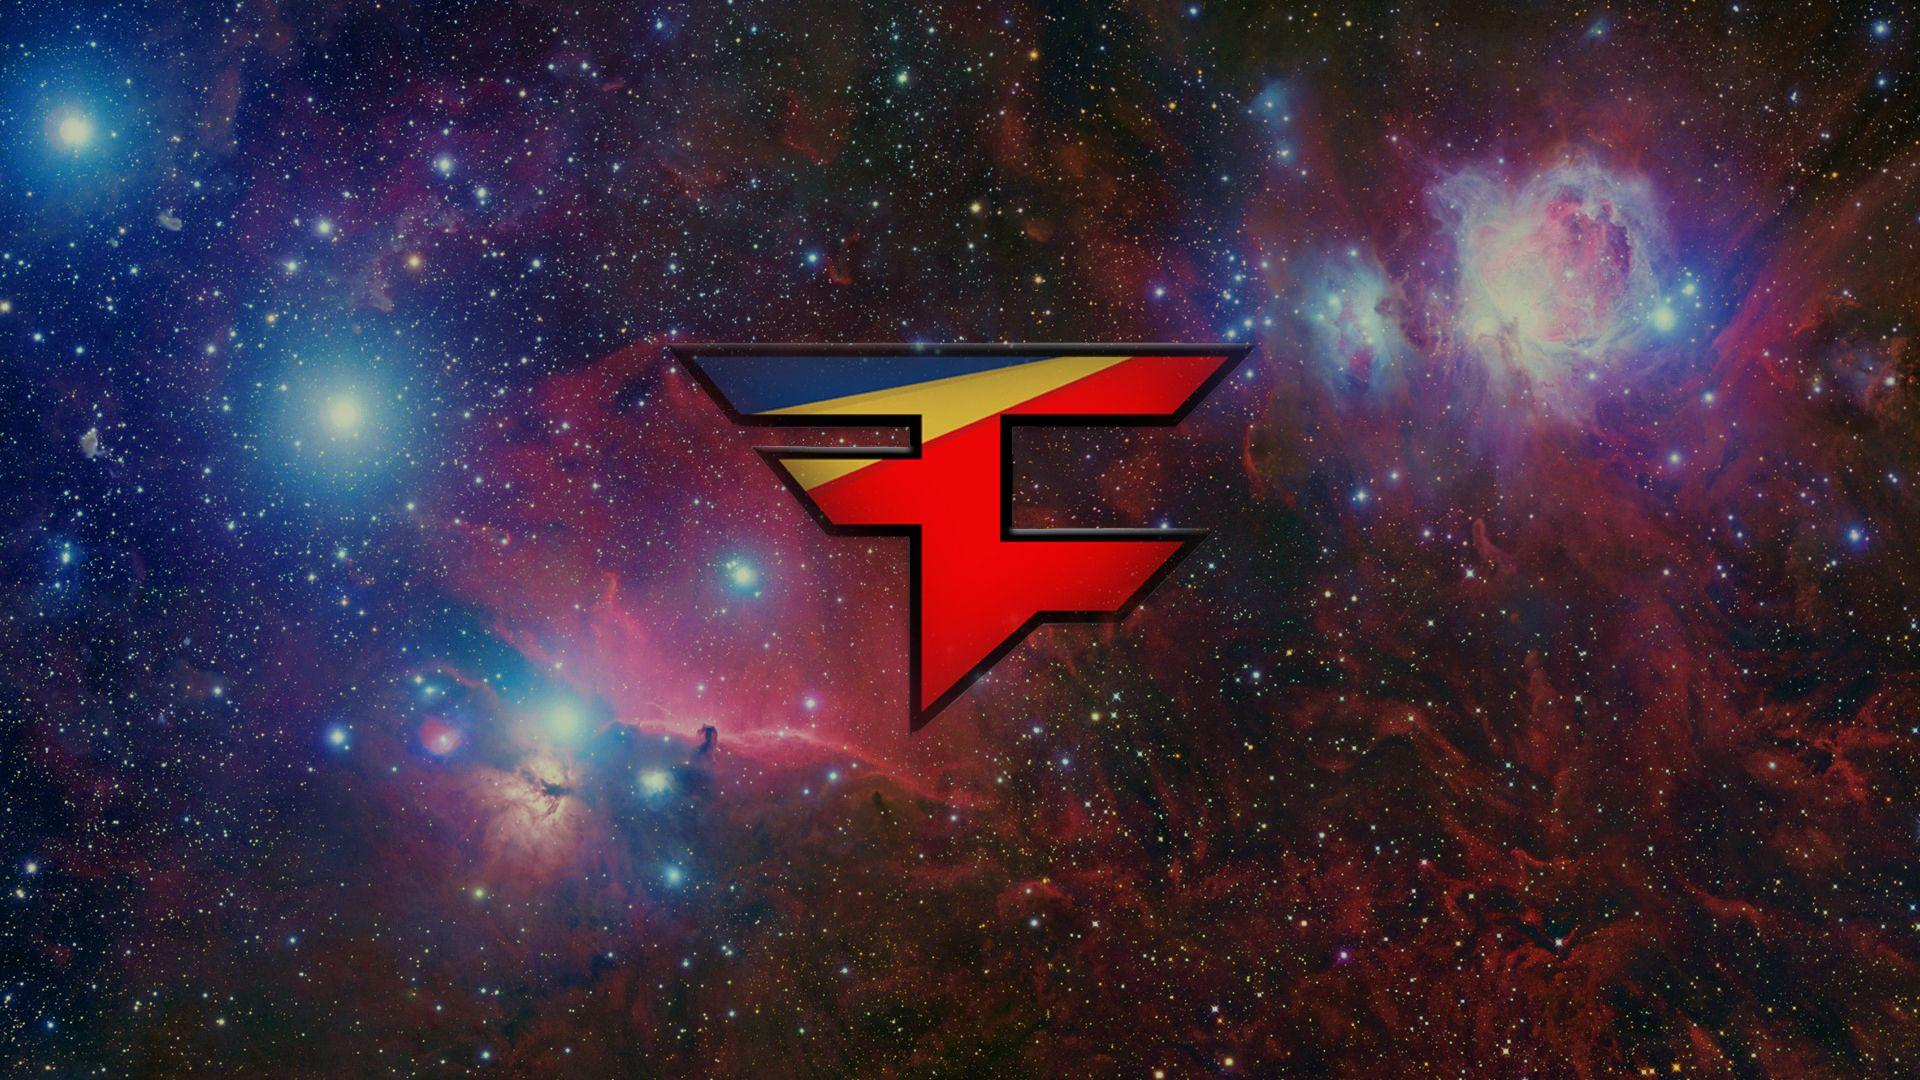 Faze Clan Iphone Wallpapers 65241